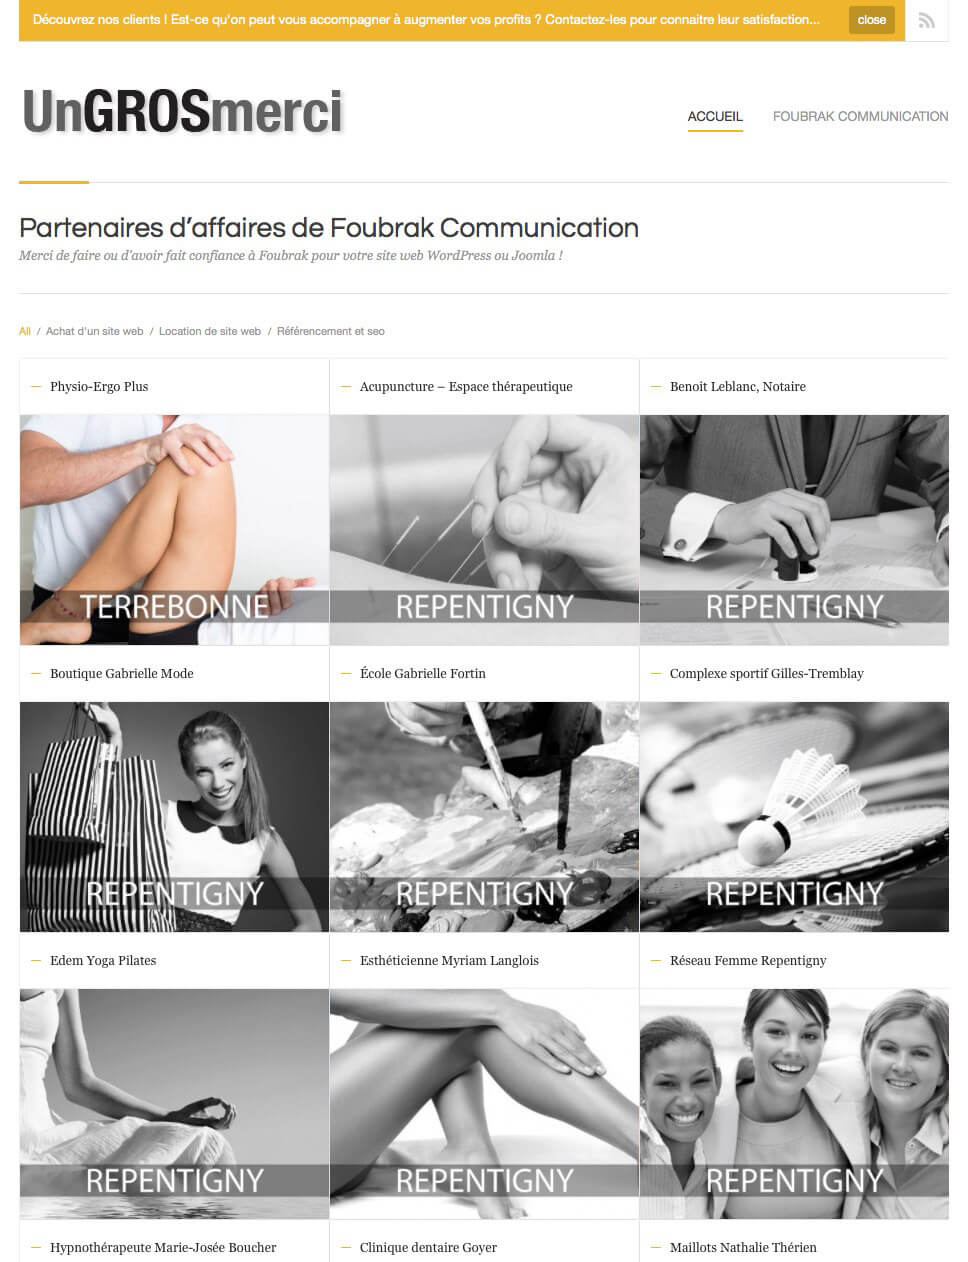 Clients de Foubrak - site web